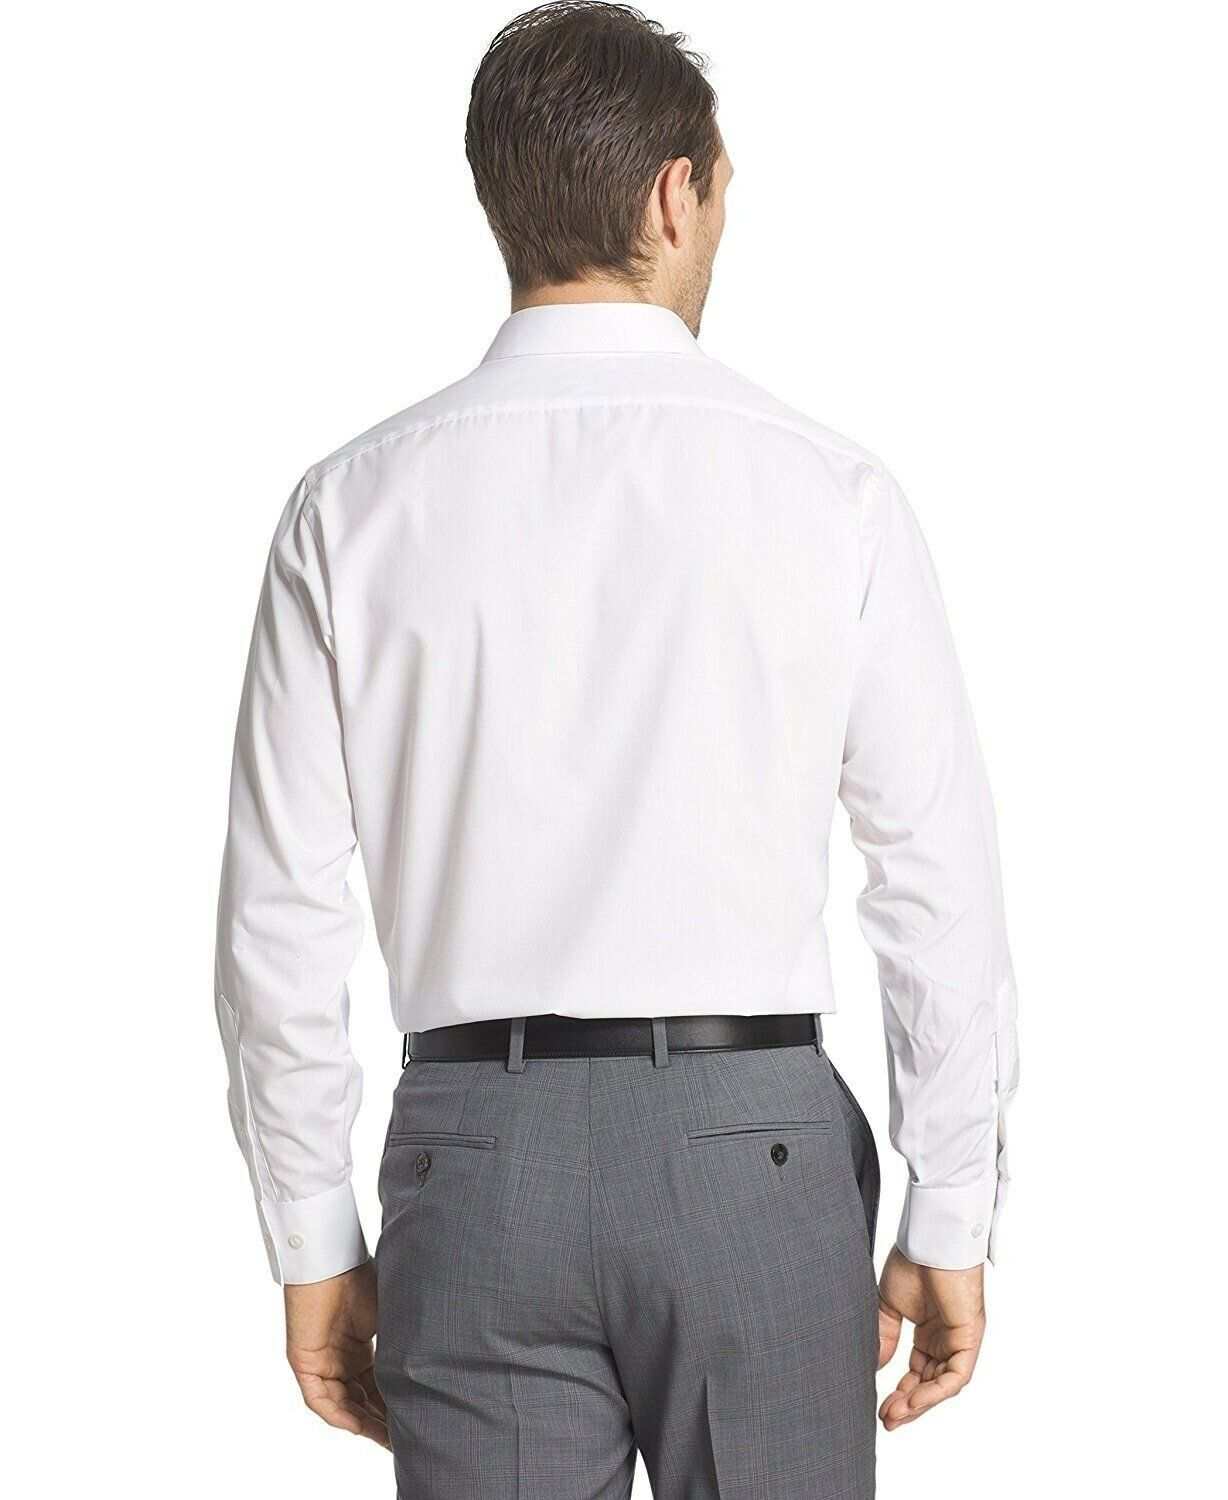 BERLIONI-ITALY-MEN-039-S-PRIME-FRENCH-CONVERTIBLE-CUFF-SOLID-DRESS-SHIRT-WHITE thumbnail 56